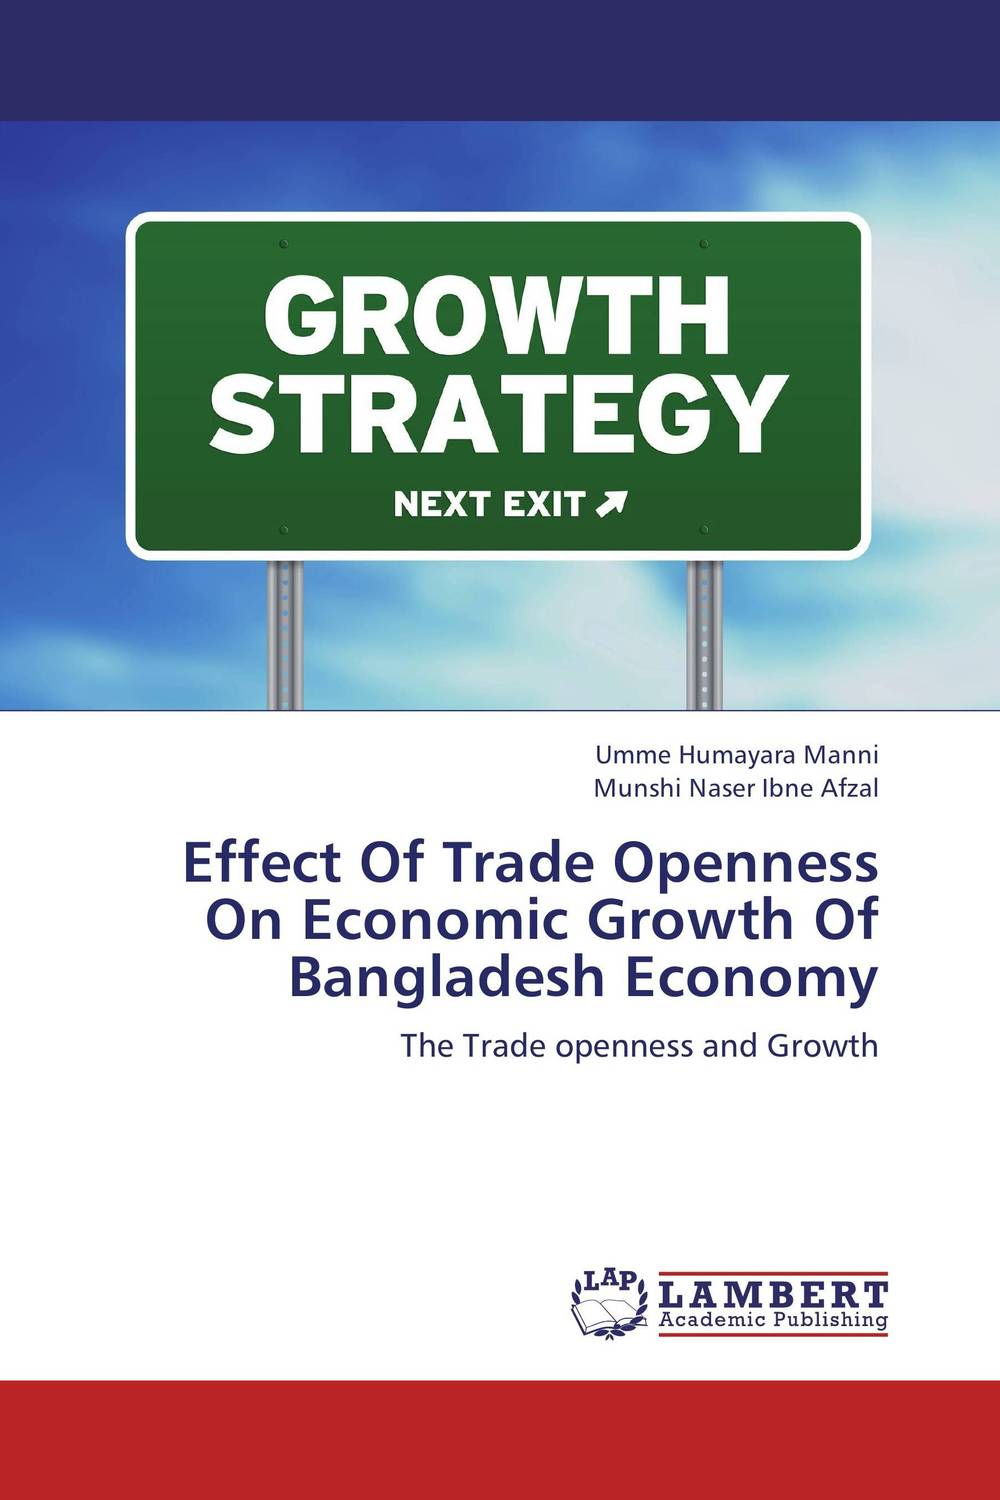 Effect Of Trade Openness On Economic Growth Of Bangladesh Economy tobias olweny and kenedy omondi the effect of macro economic factors on stock return volatility at nse